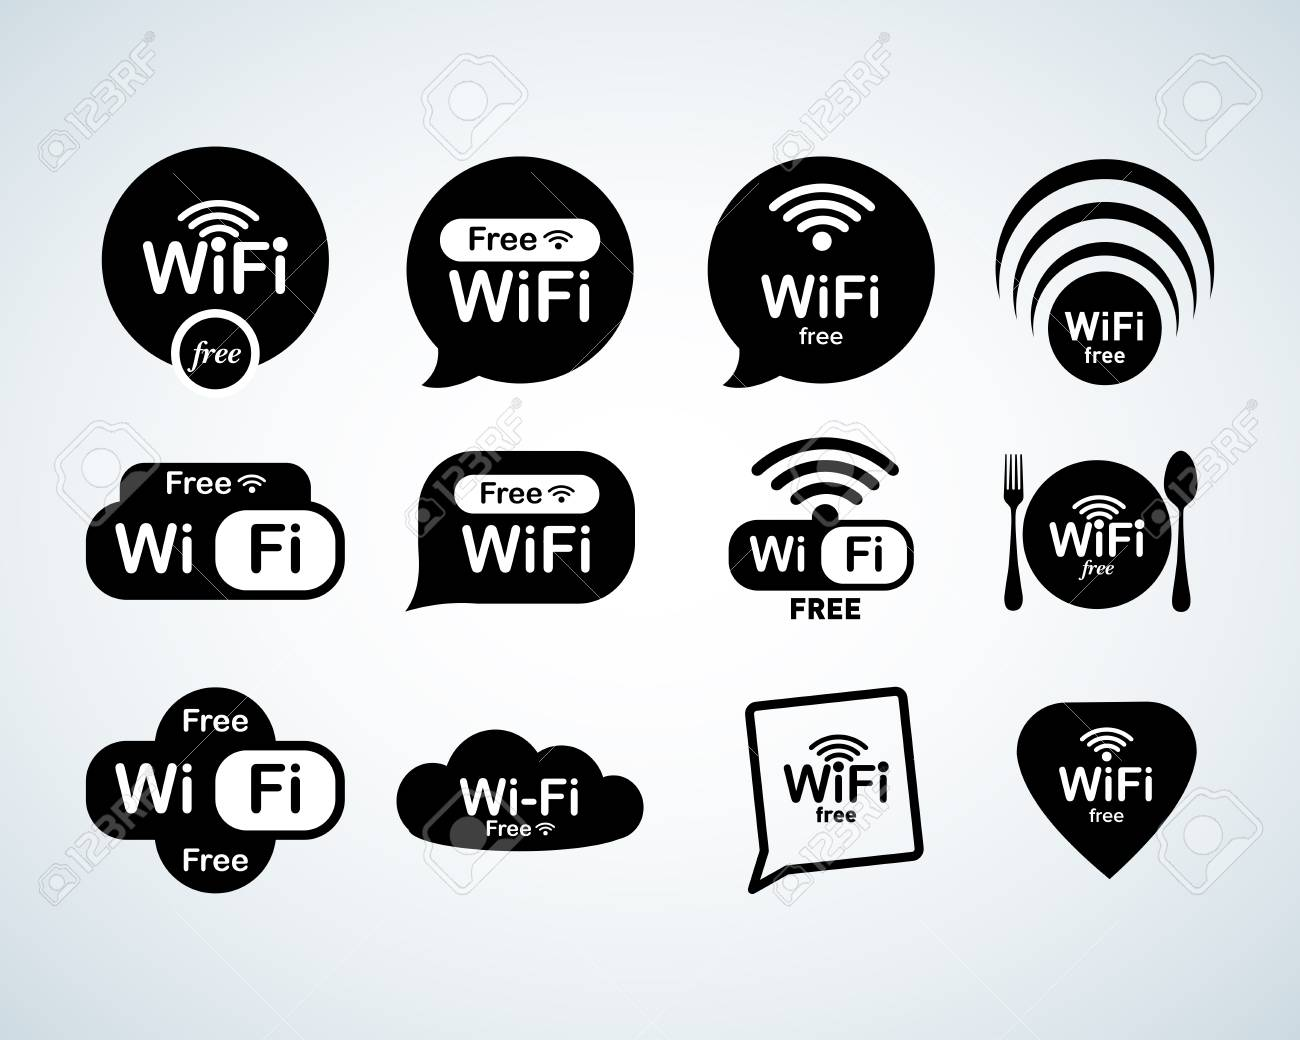 Free Wifi Logo Set Free Wifi Signs Set Wifi Symbols Wireless Royalty Free Cliparts Vectors And Stock Illustration Image 106267299